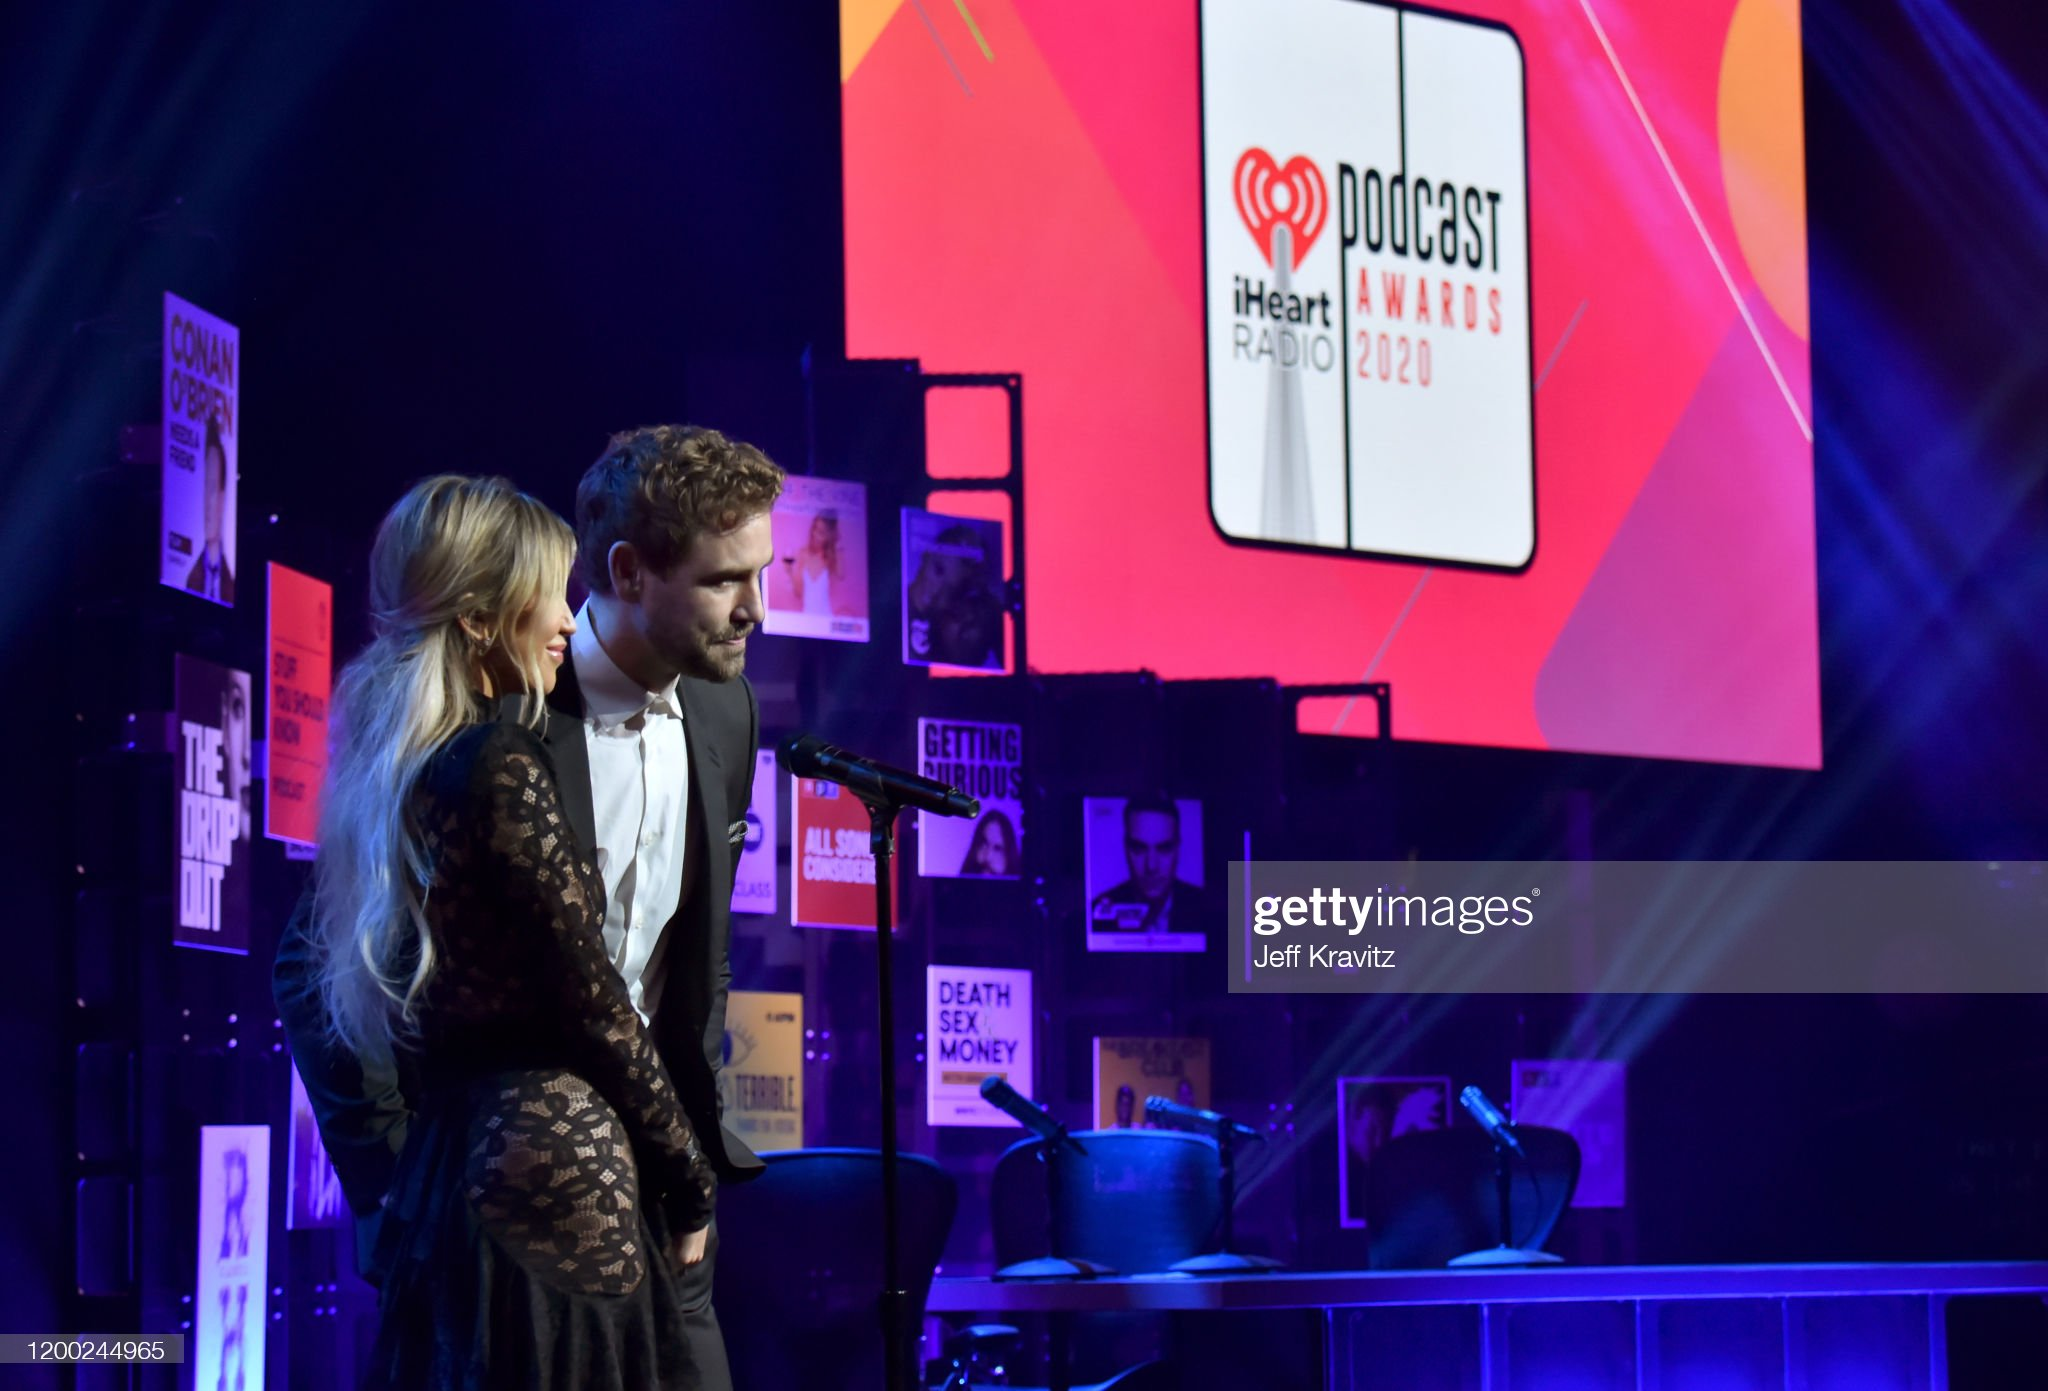 Kaitlyn Bristowe - Jason Tartick - FAN Forum - Discussion  - Page 51 Kaitlyn-bristowe-and-nick-viall-speak-onstage-at-the-2020-iheartradio-picture-id1200244965?s=2048x2048